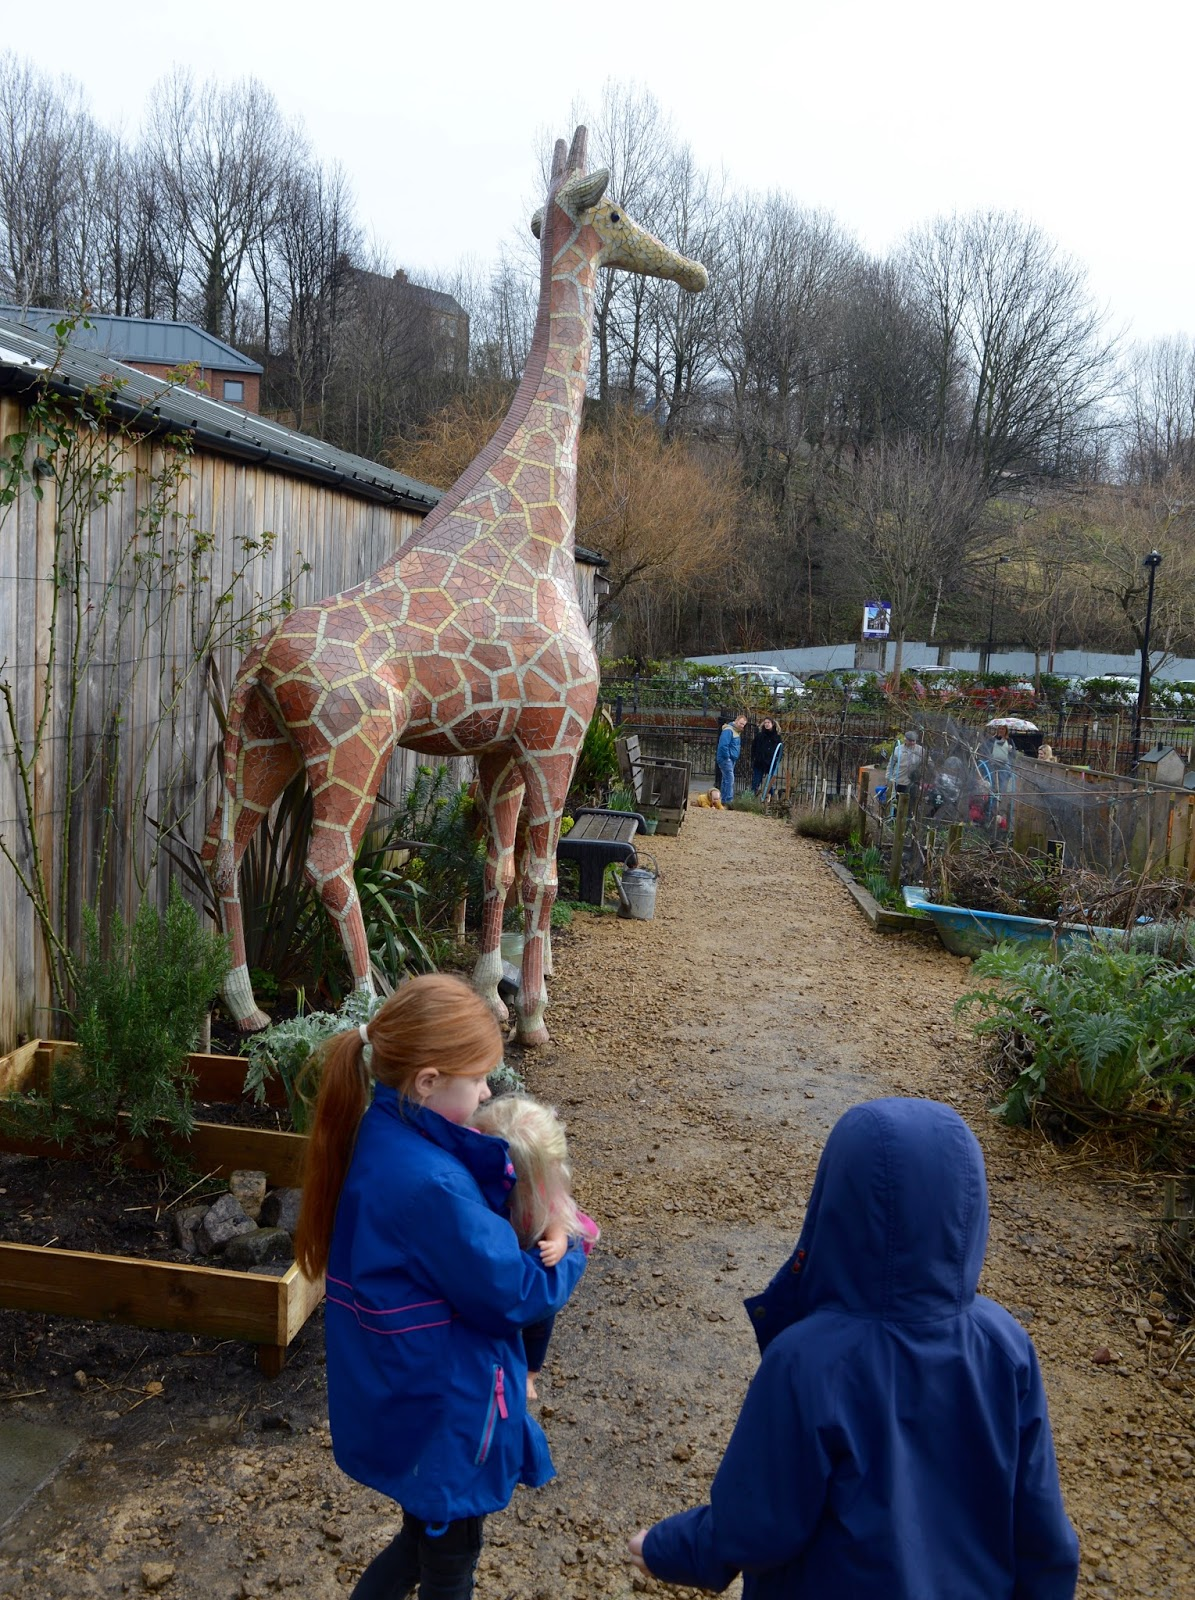 Ouseburn Farm Newcastle | A FREE Place to Take the Kids - giant giraffe